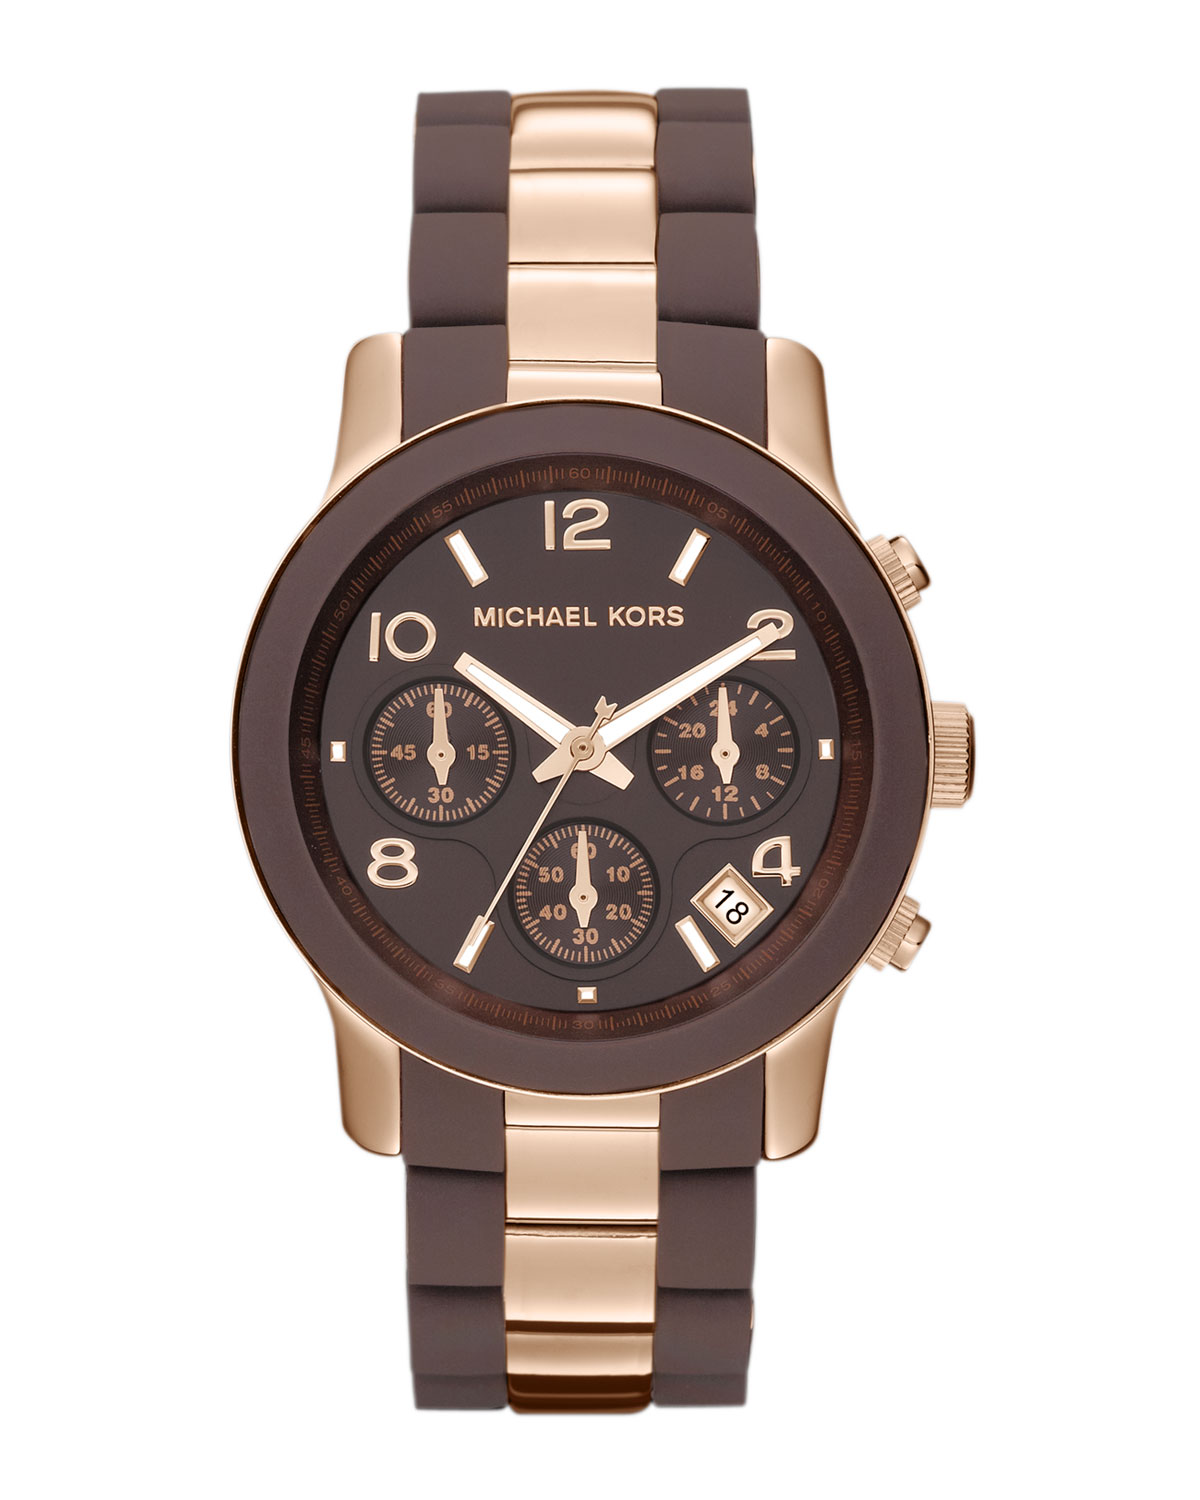 Michael kors midsize brown silicone and rose golden stainless steel runway chronograph watch in for Watches michael kors